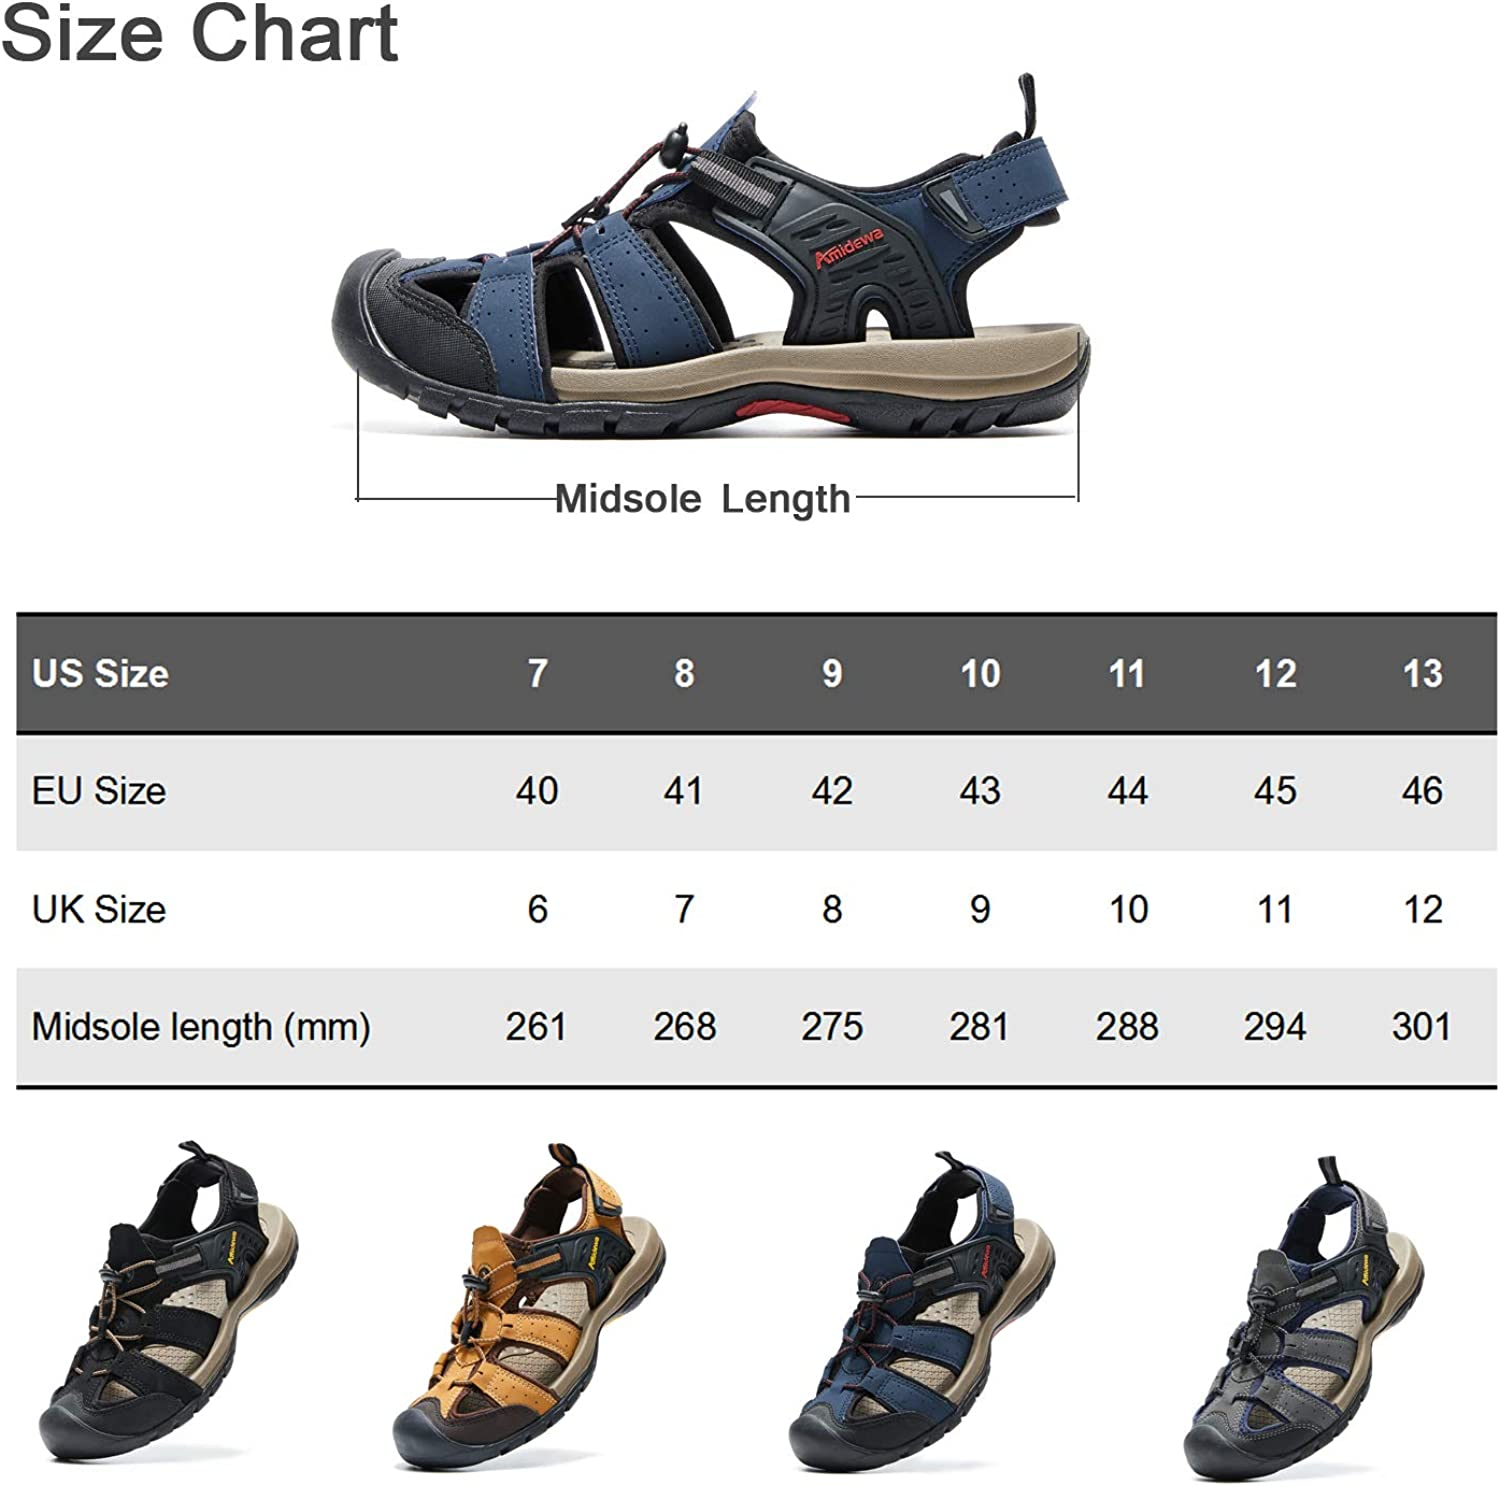 AMIDEWA Mens Sports Sandals Closed Toe Outdoor Water Shoes for Athletic Fisherman Beach Hiking Walking